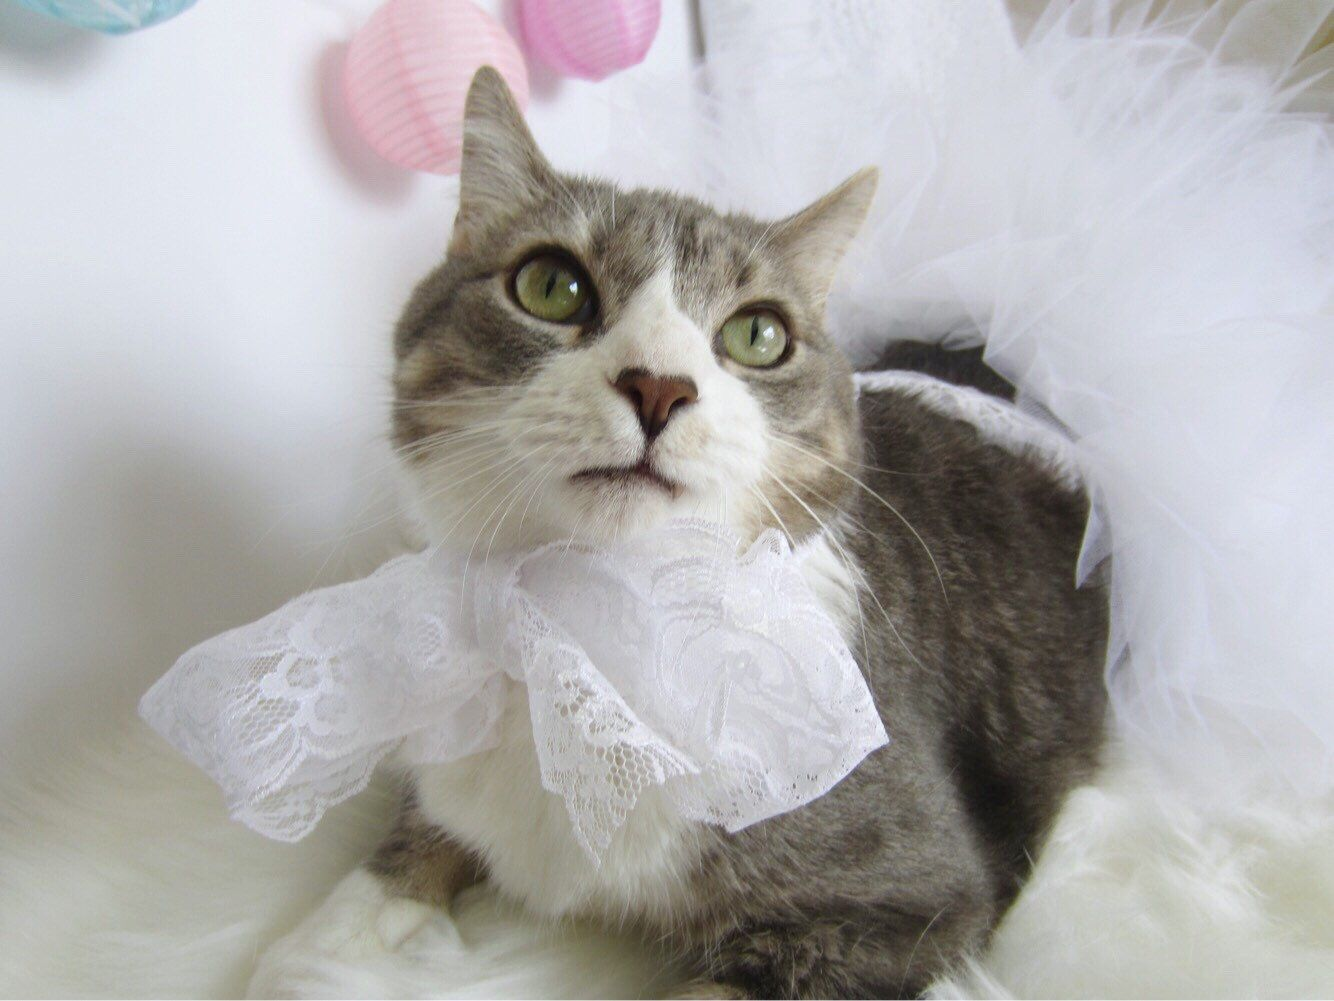 What A Cute Outfit To Use In Pictures Of Your Cat White Lace White Tutu Handmade Pet Handmade Tulle Tutu Dress